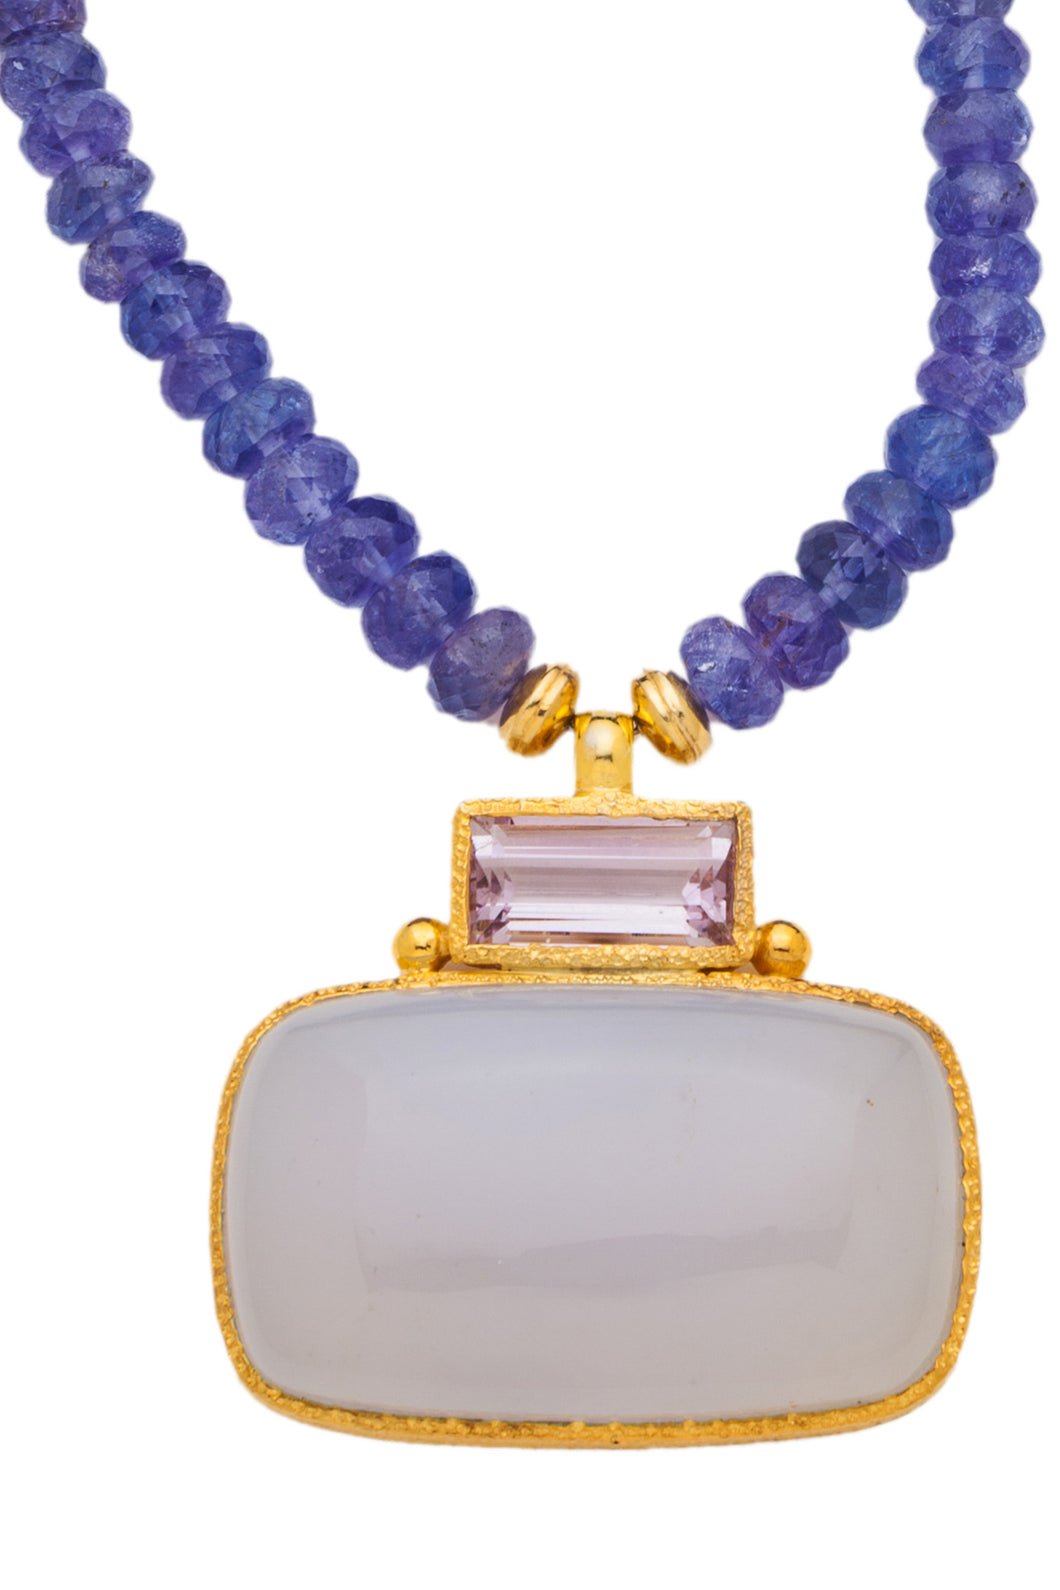 ONE OF A KIND Tanzanite Necklace with Rose Amethyst and Chalcedony Pendant set in 24kt gold vermeil  NF292-Tanz